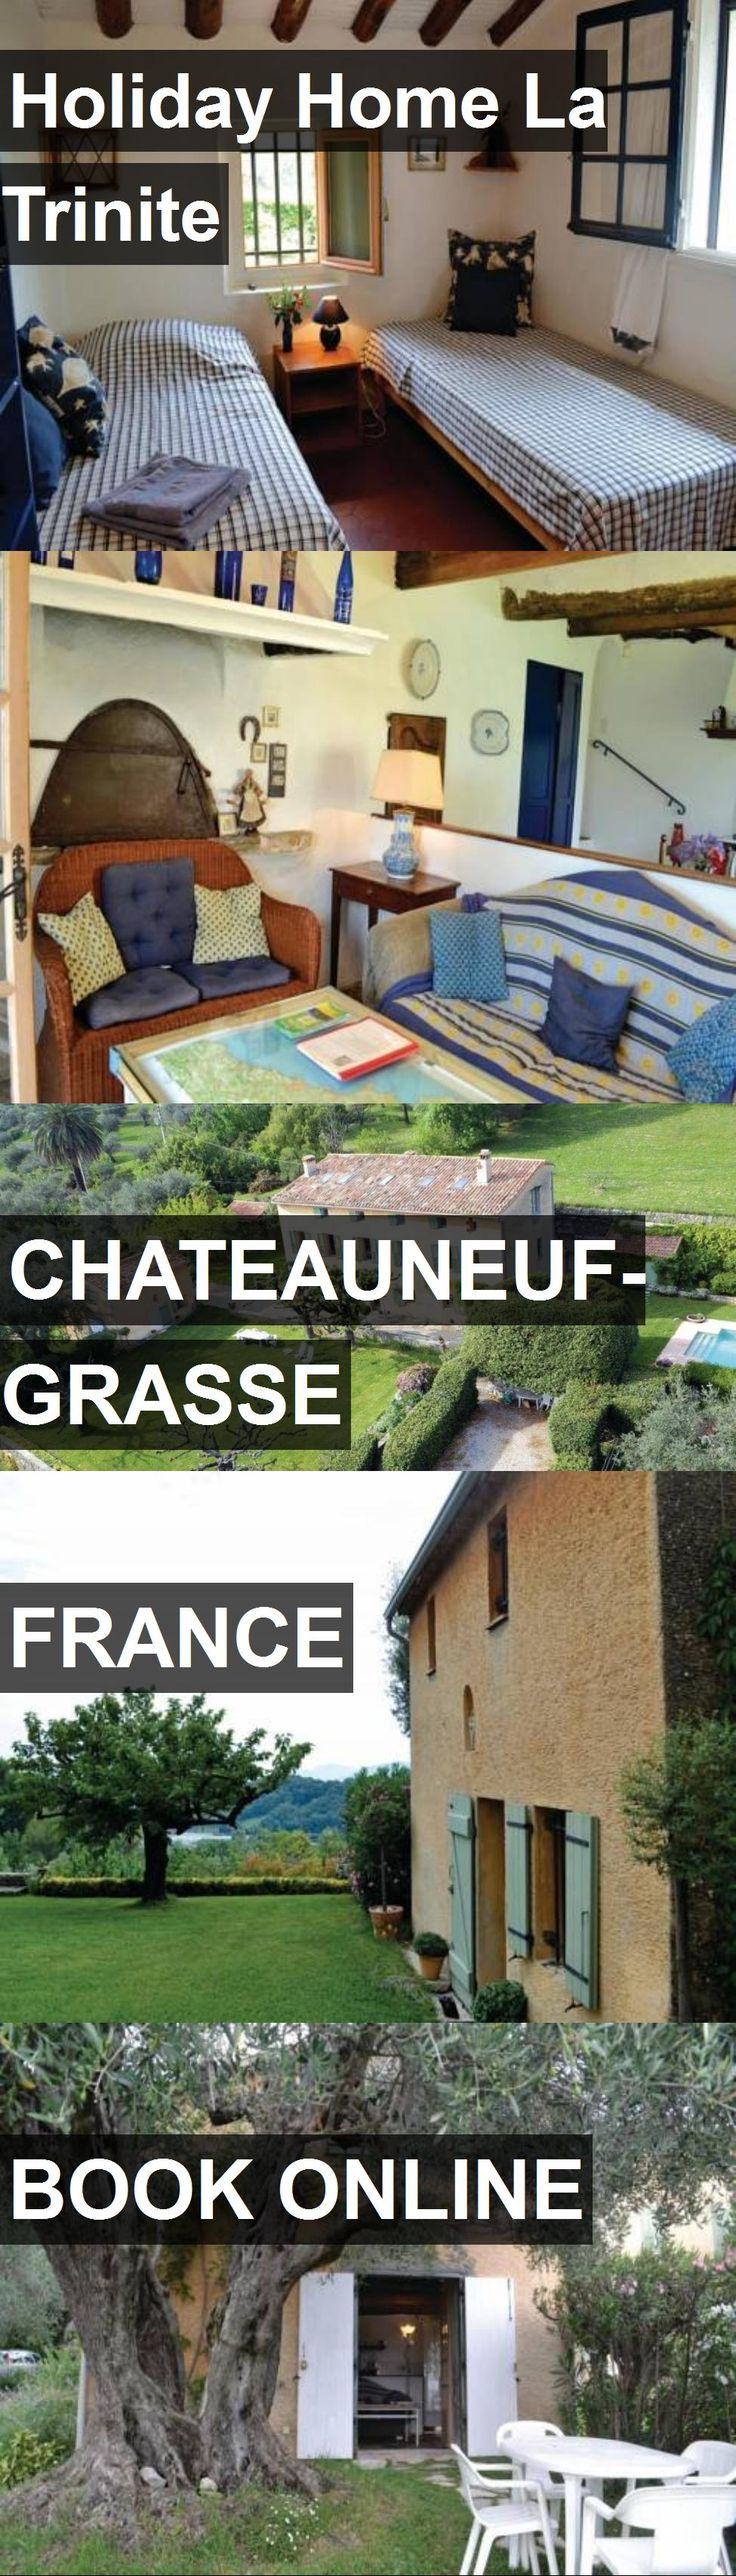 Hotel Holiday Home La Trinite in Chateauneuf-Grasse, France. For more information, photos, reviews and best prices please follow the link. #France #Chateauneuf-Grasse #travel #vacation #hotel